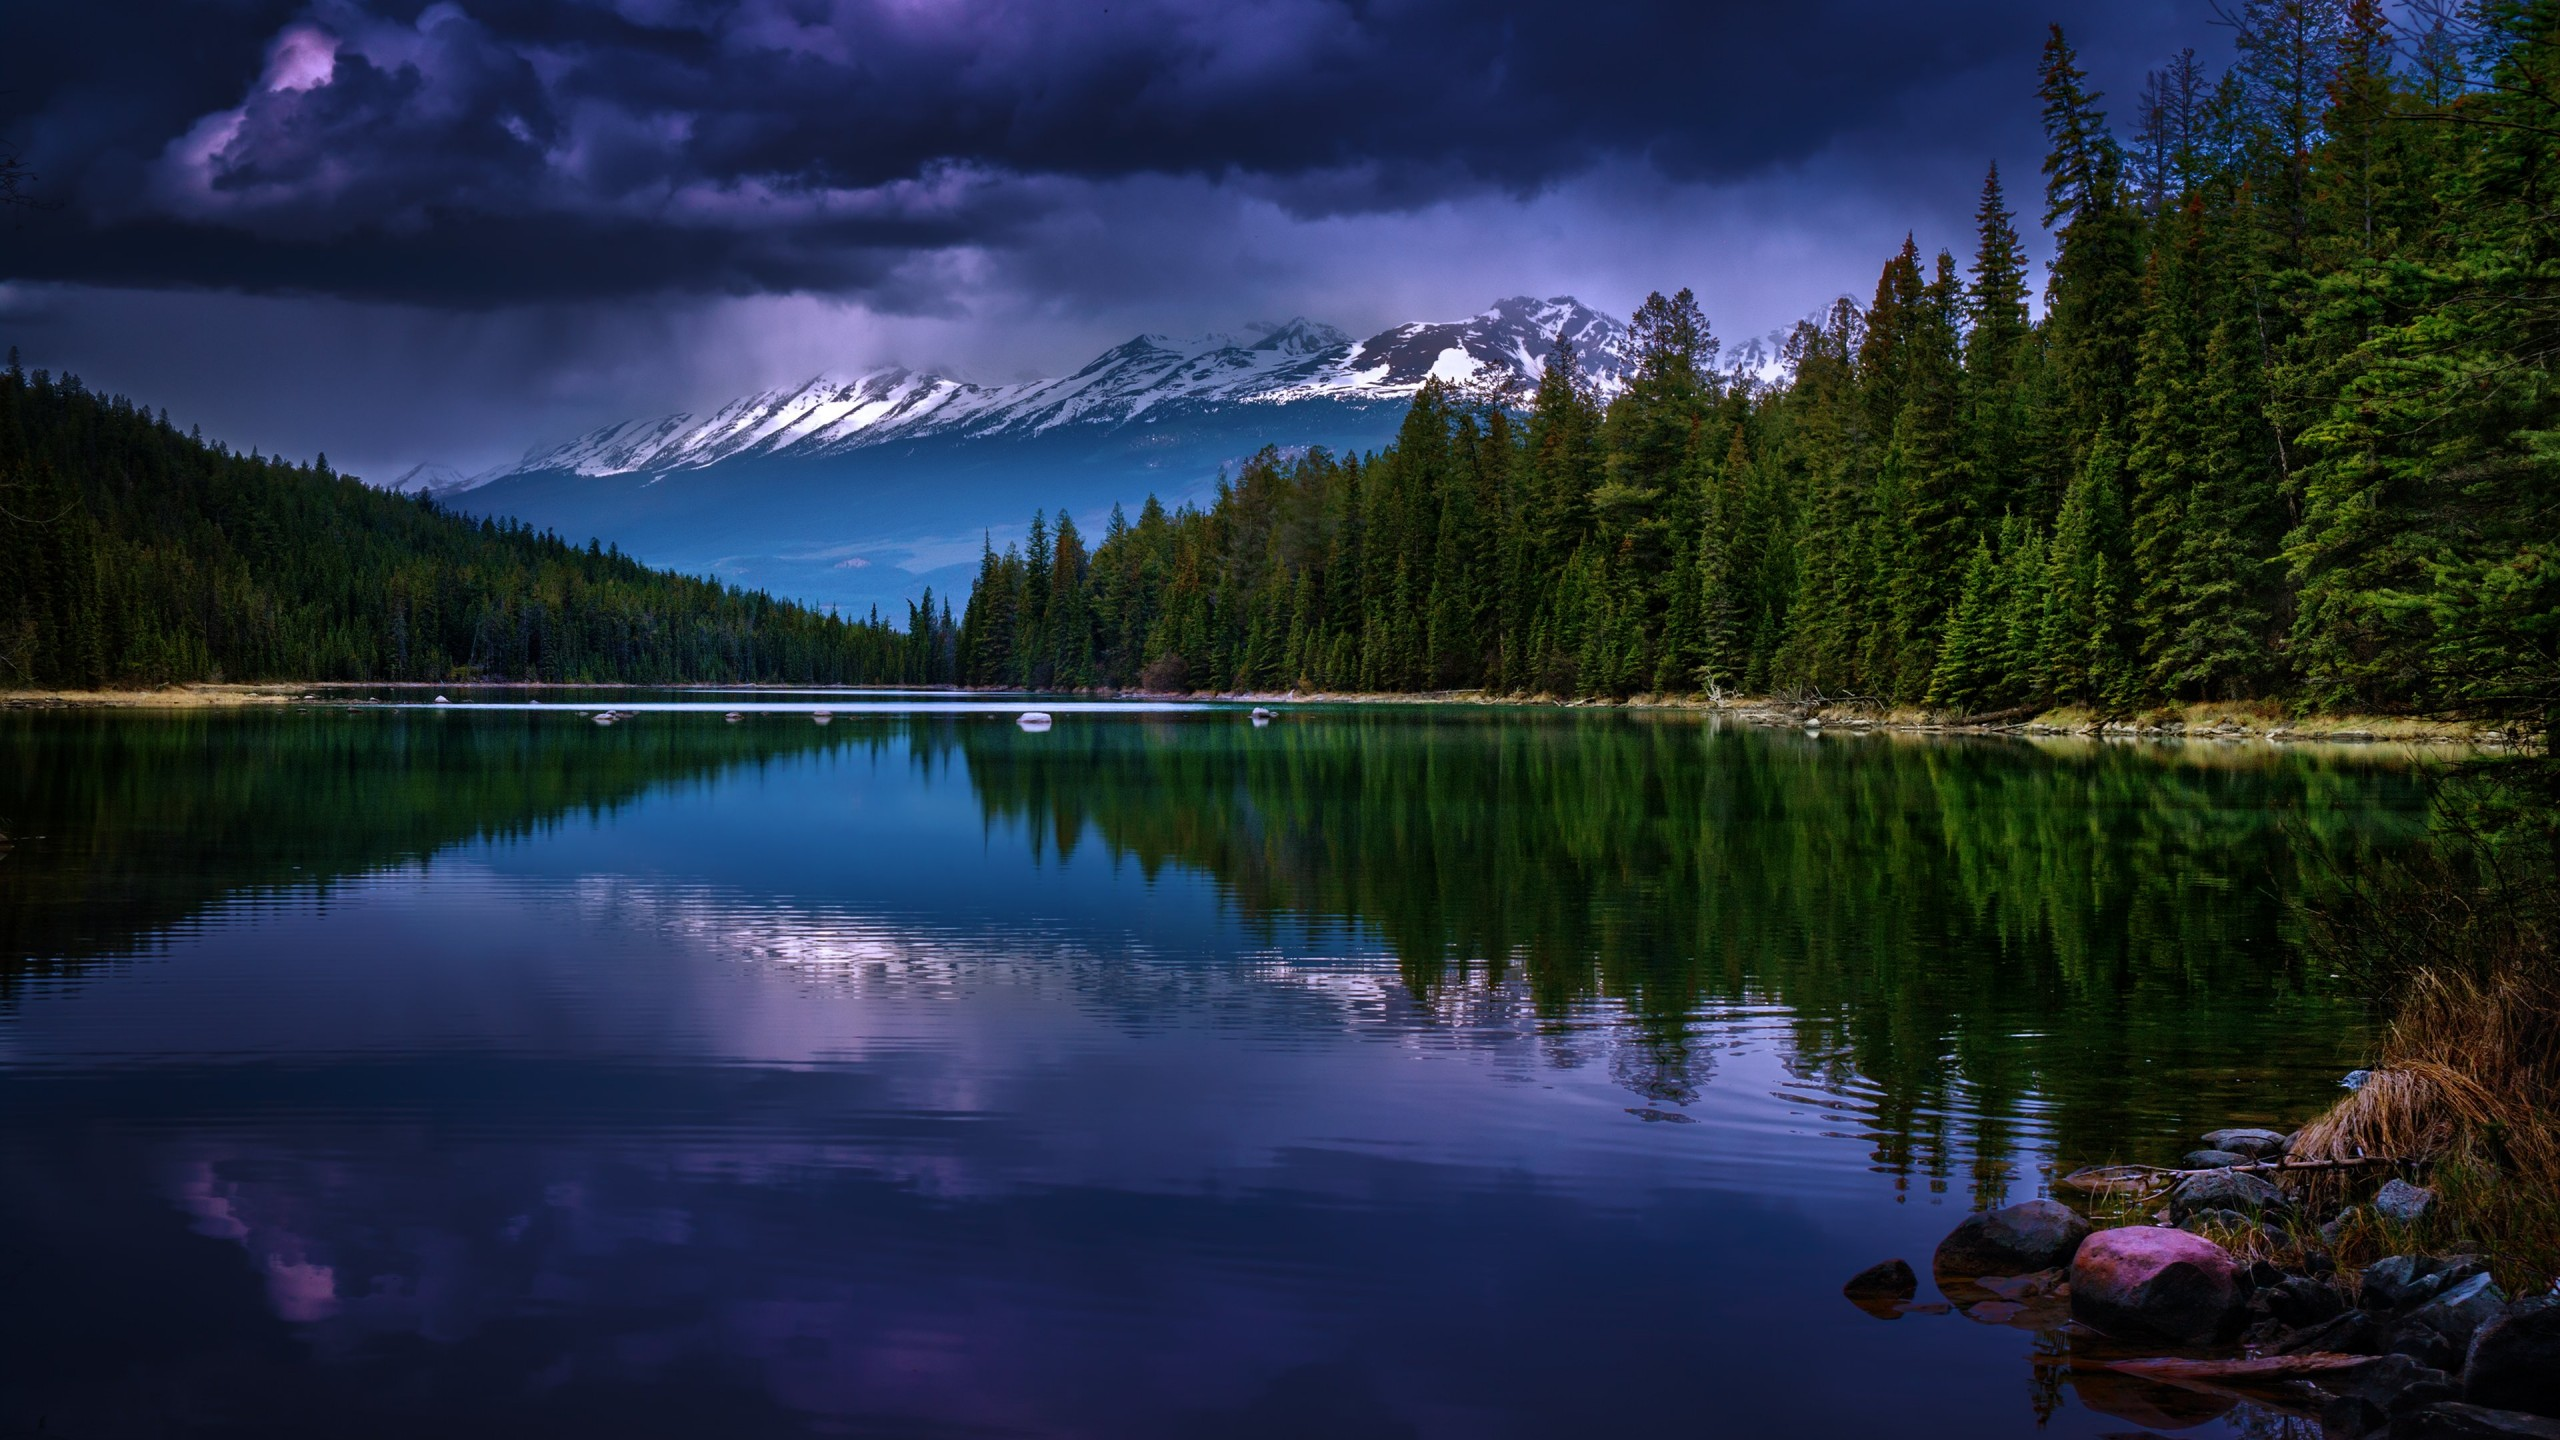 First Lake, Alberta, Canada Wallpaper for Social Media YouTube Channel Art